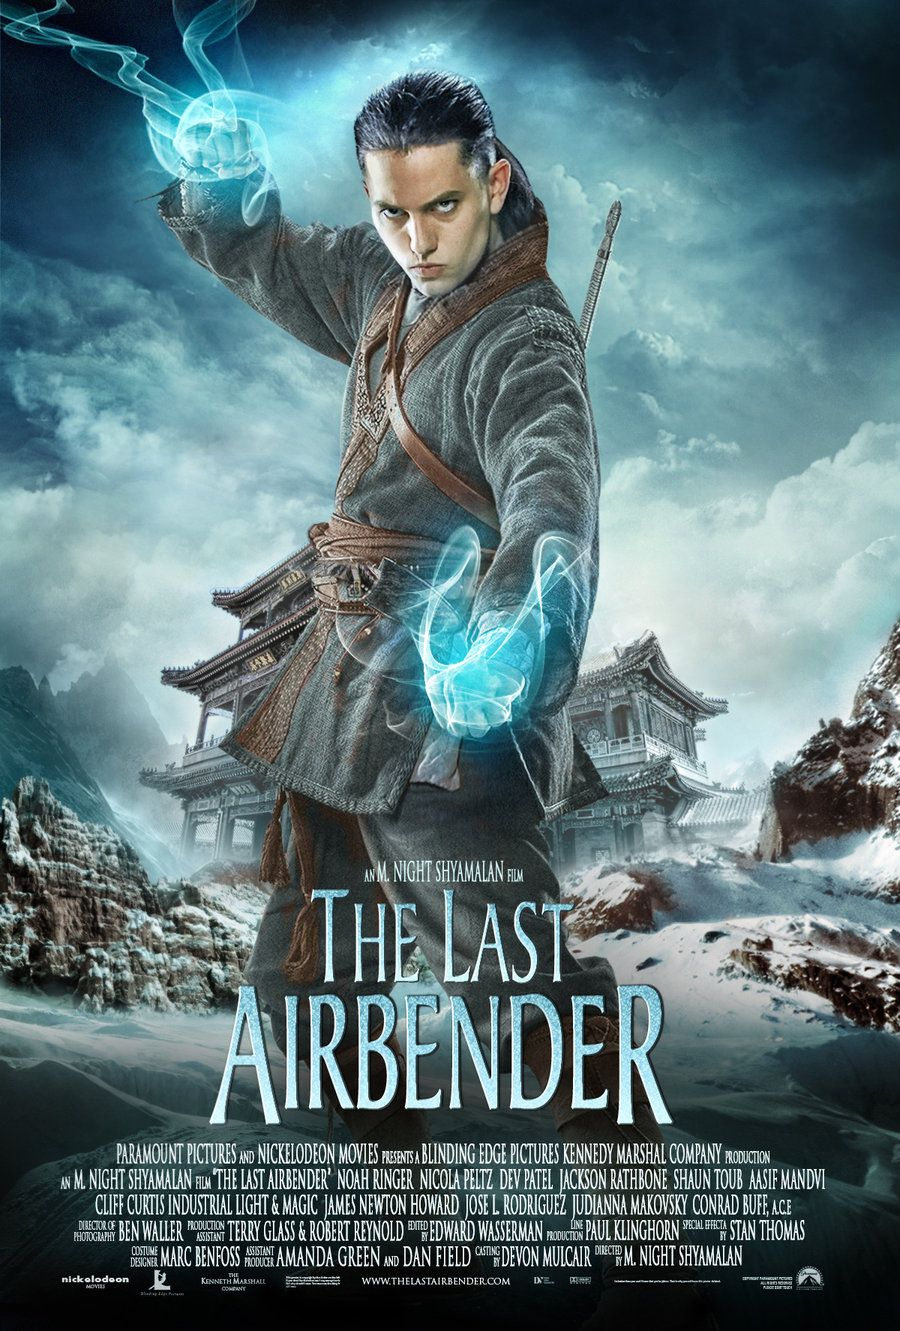 the last airbender is a 2010 american action fantasy